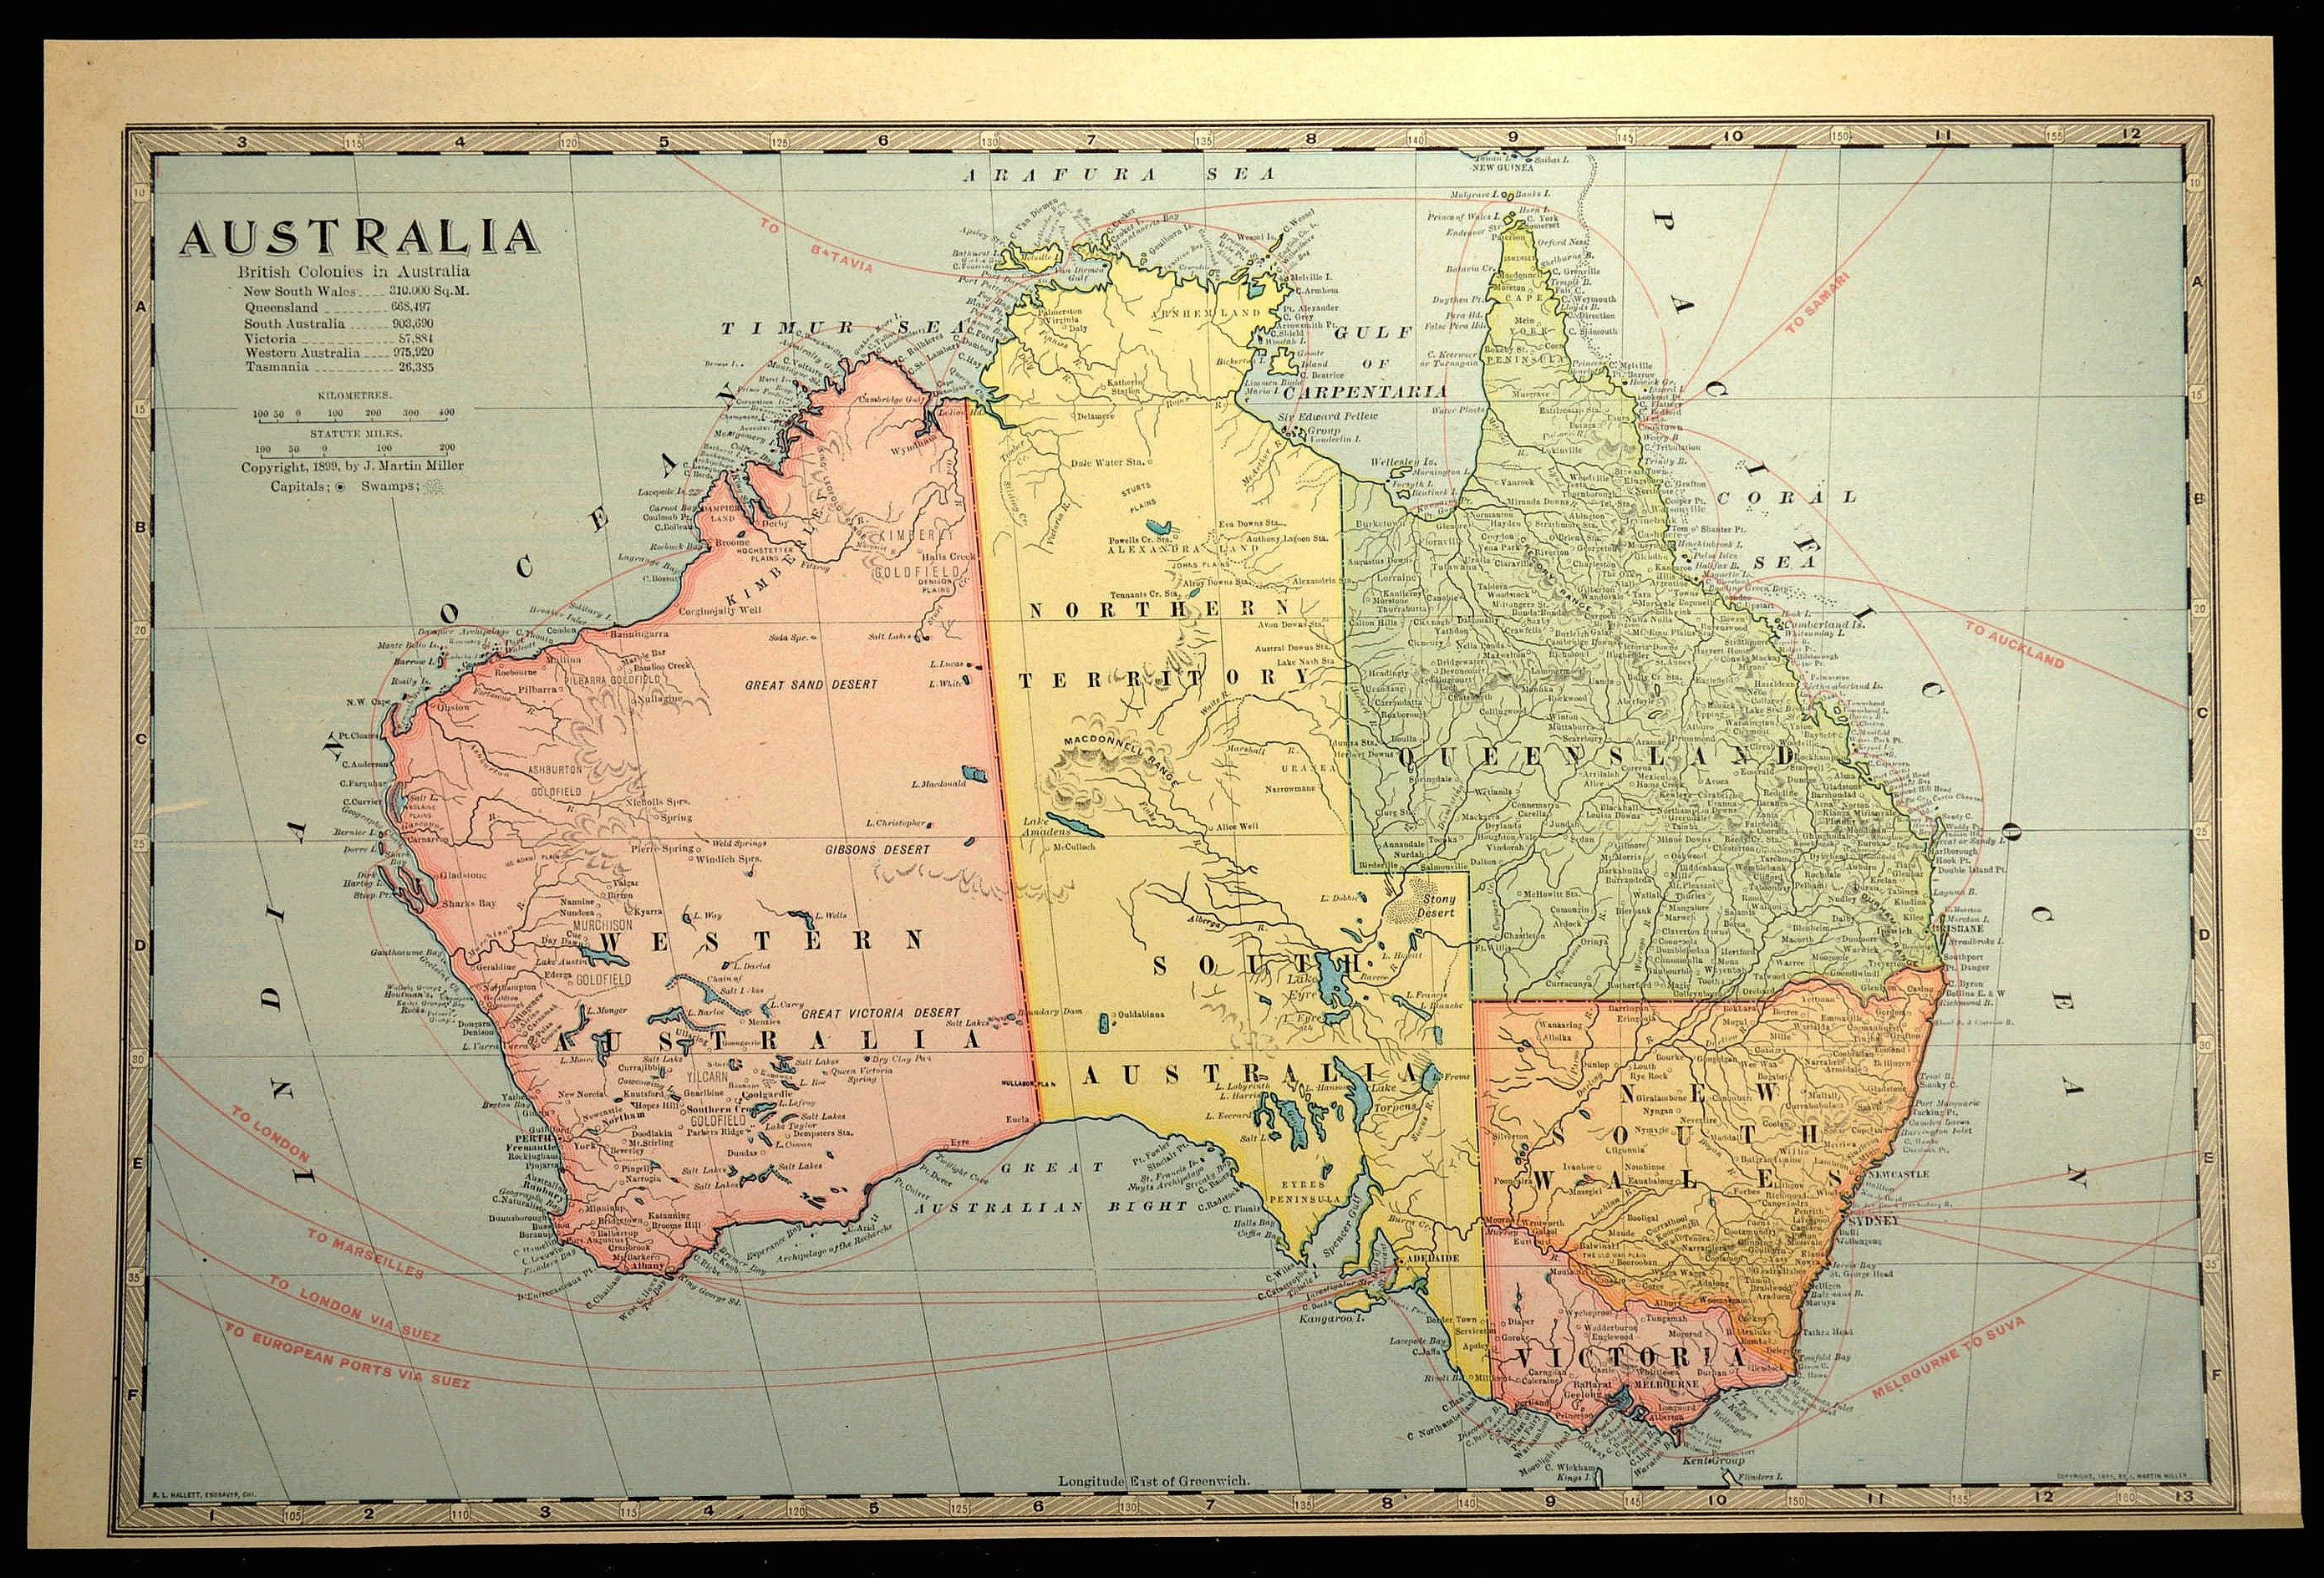 Full Map Of Australia.Australia Map Of Australia Wall Art Decor Antique Original Late 1800s Travel Gift Wedding Gift Idea For Him Print